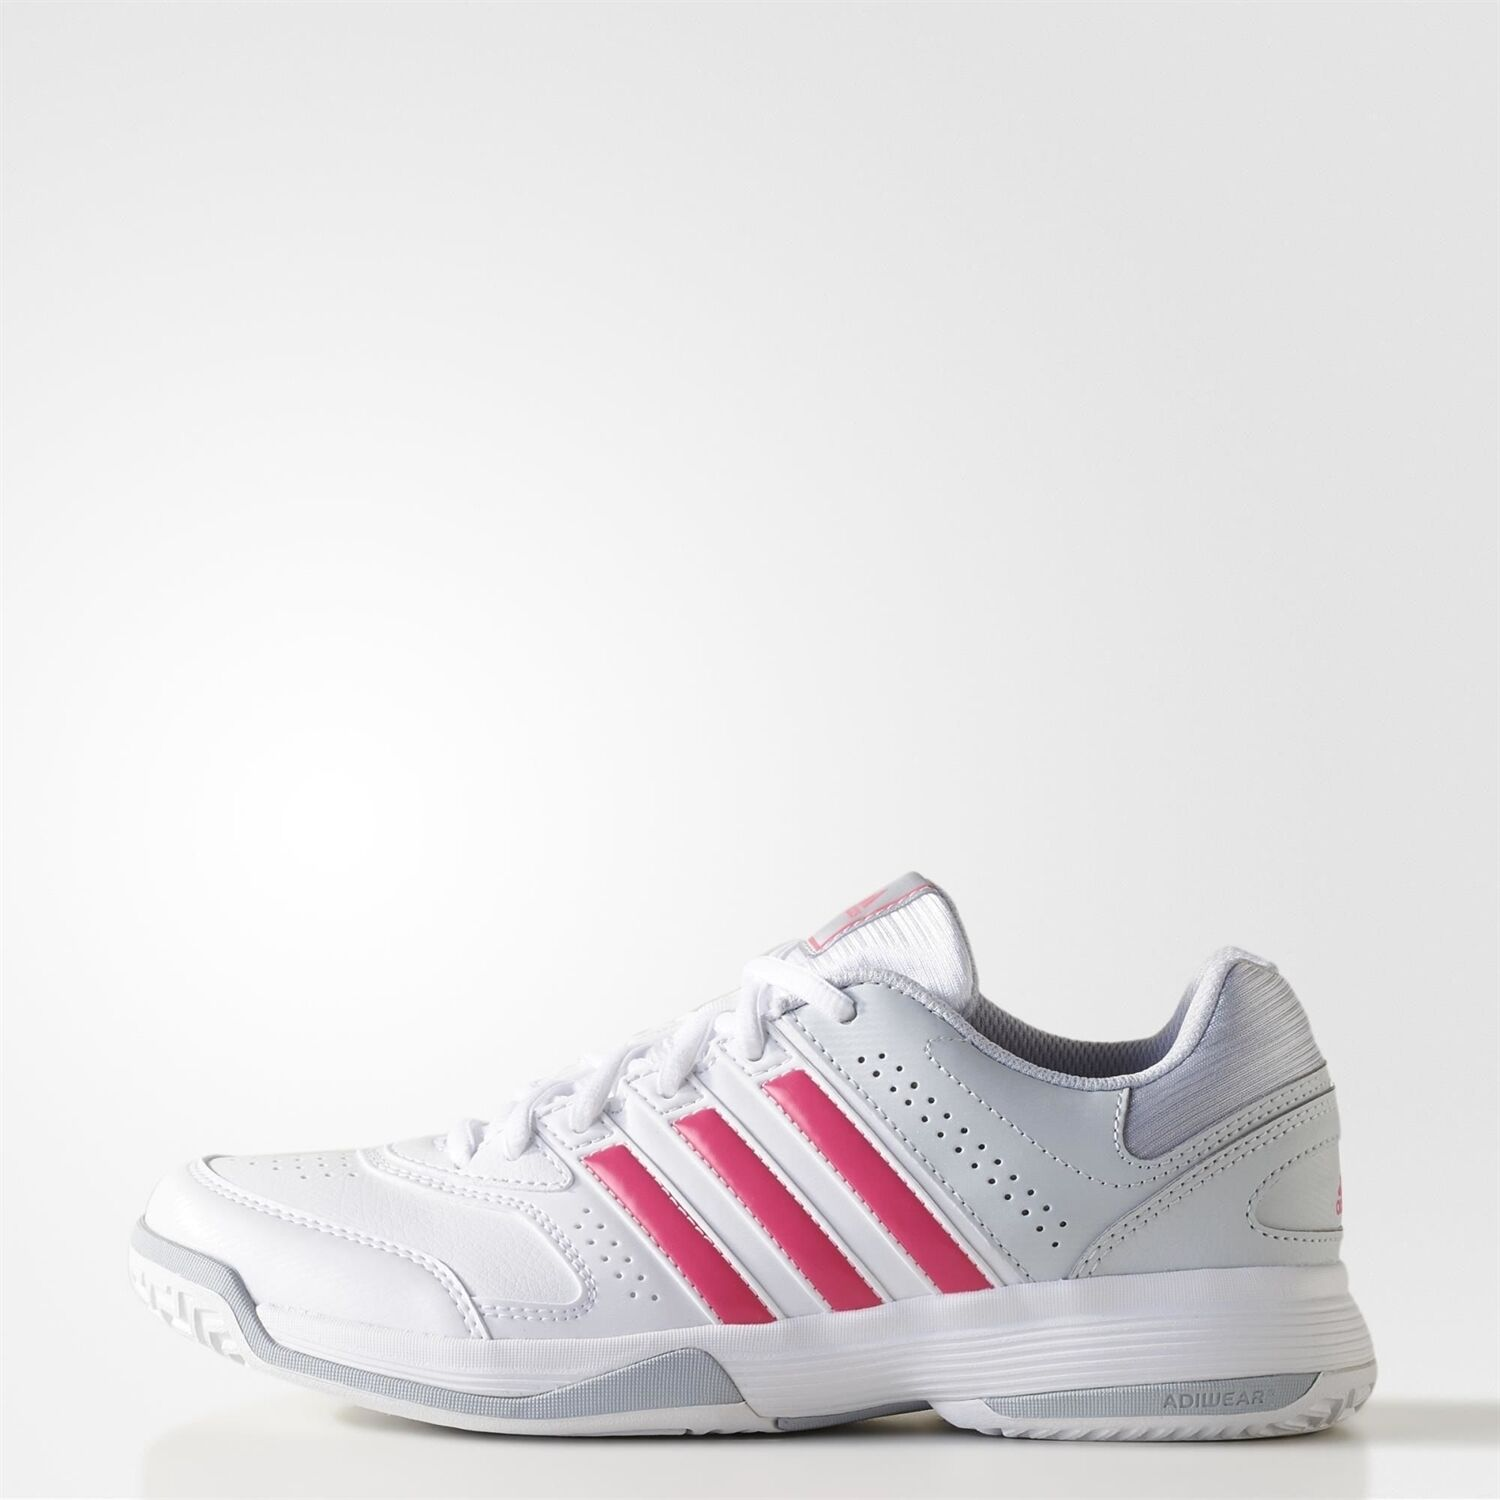 Adidas Response Aspire STR Womens Trainers Running Sports Fashion Lightweight Trainers Womens db1096